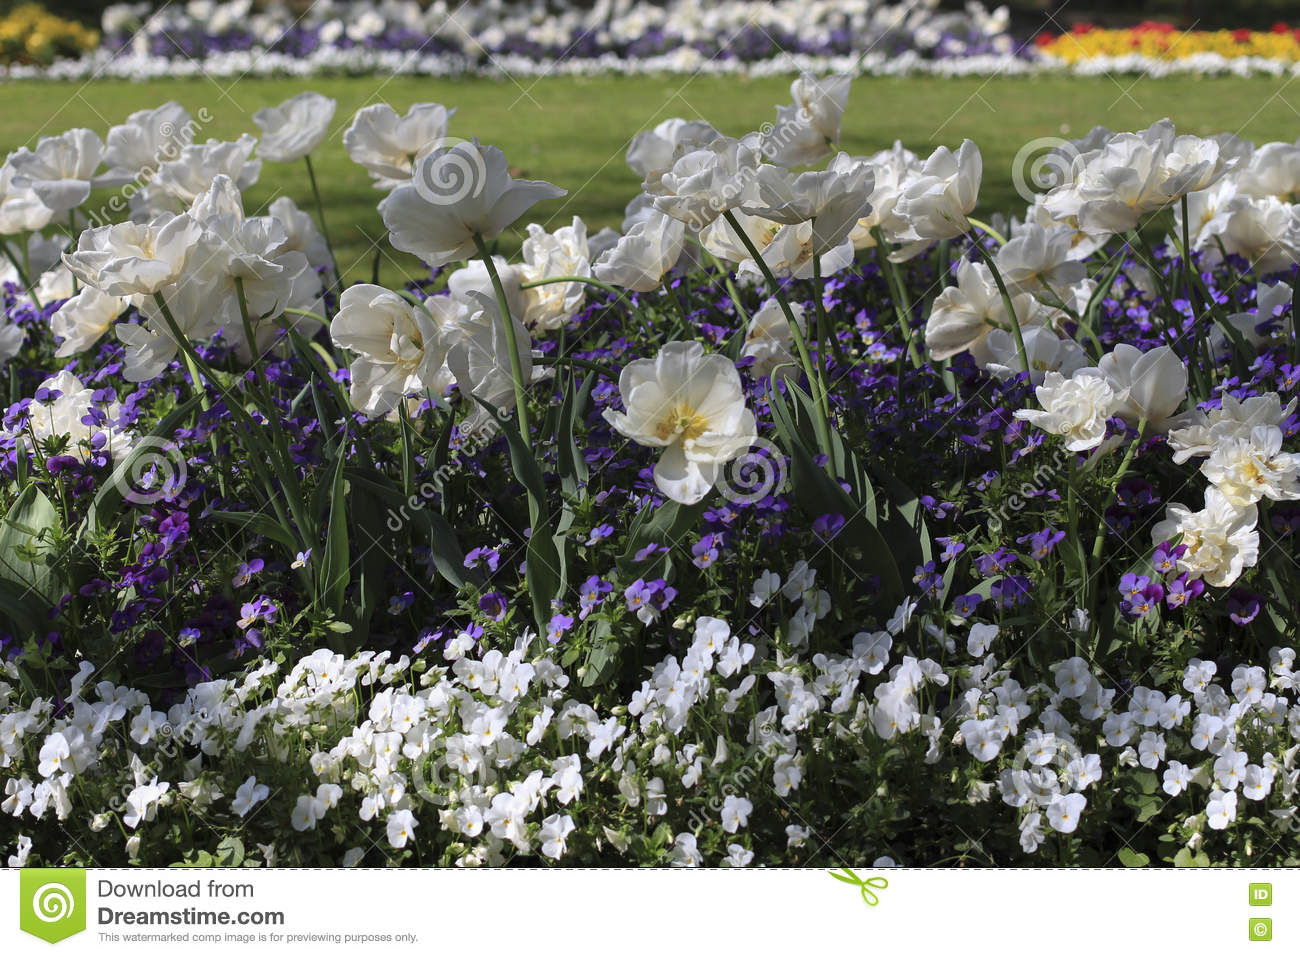 White tulips among blue and white pansies stock photo image of white tulips among blue and white pansies mightylinksfo